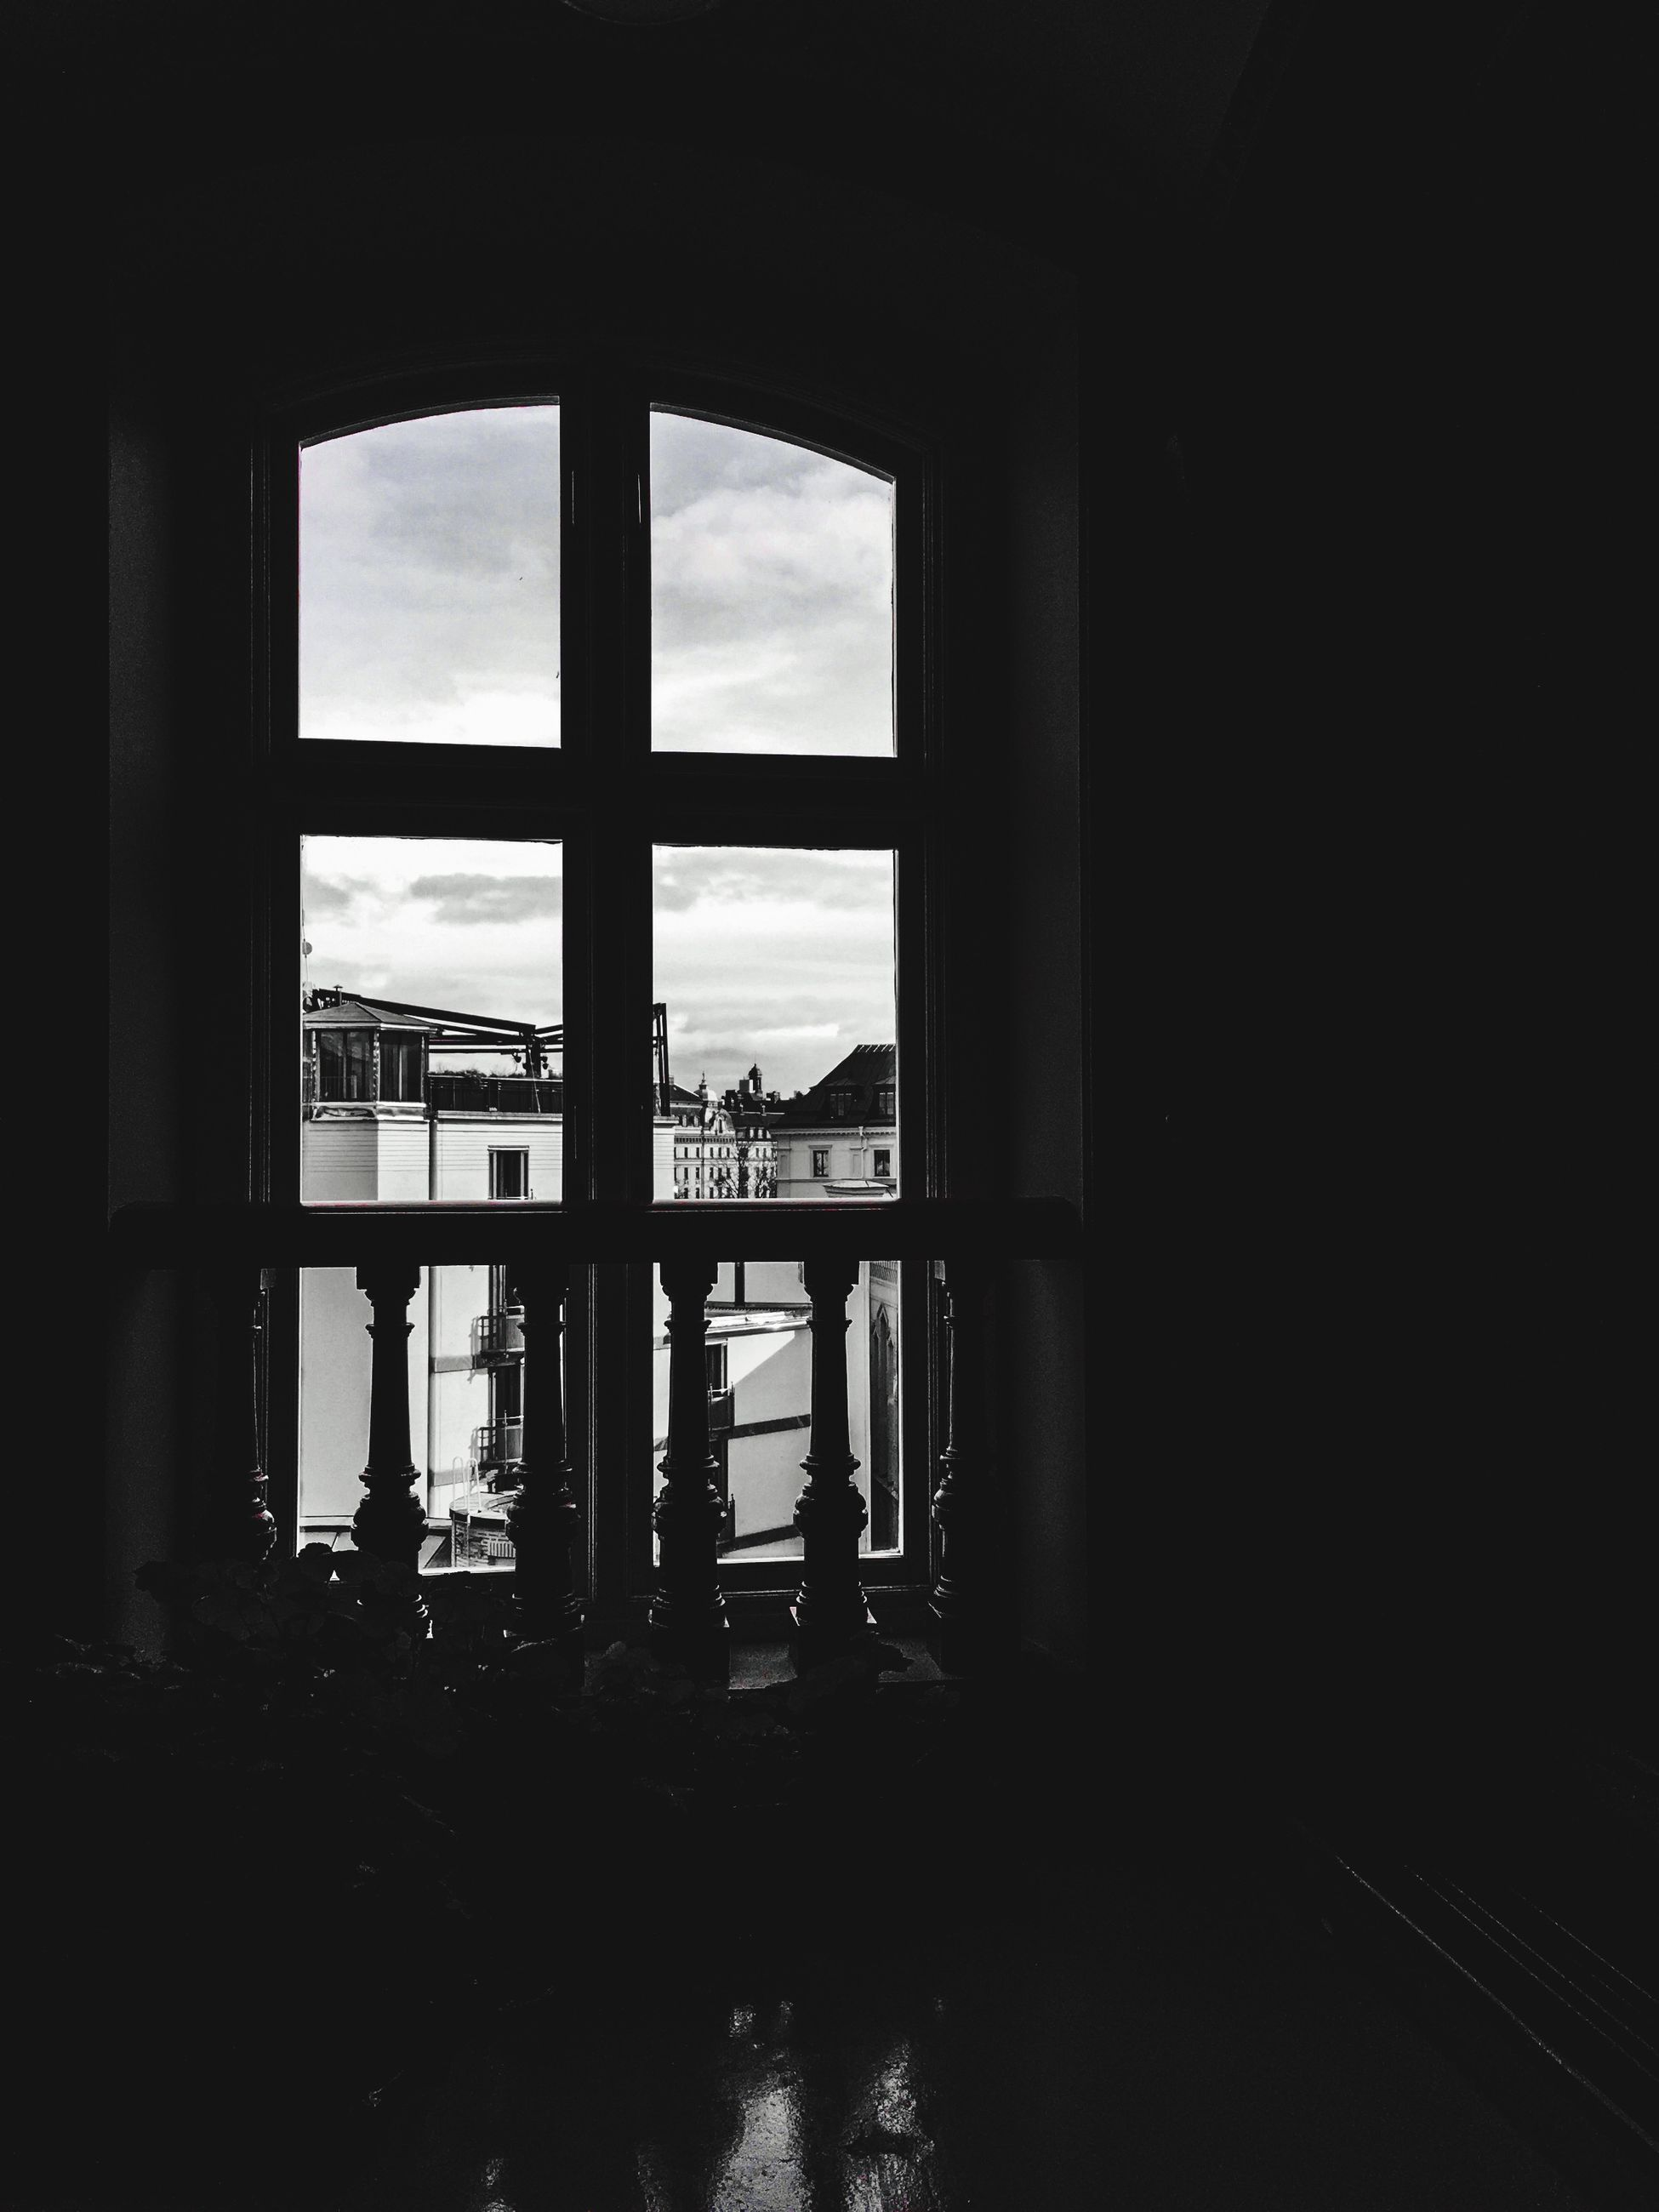 indoors, window, architecture, built structure, sea, water, sky, glass - material, silhouette, transparent, horizon over water, day, reflection, no people, sunlight, cloud - sky, dark, tranquility, empty, absence